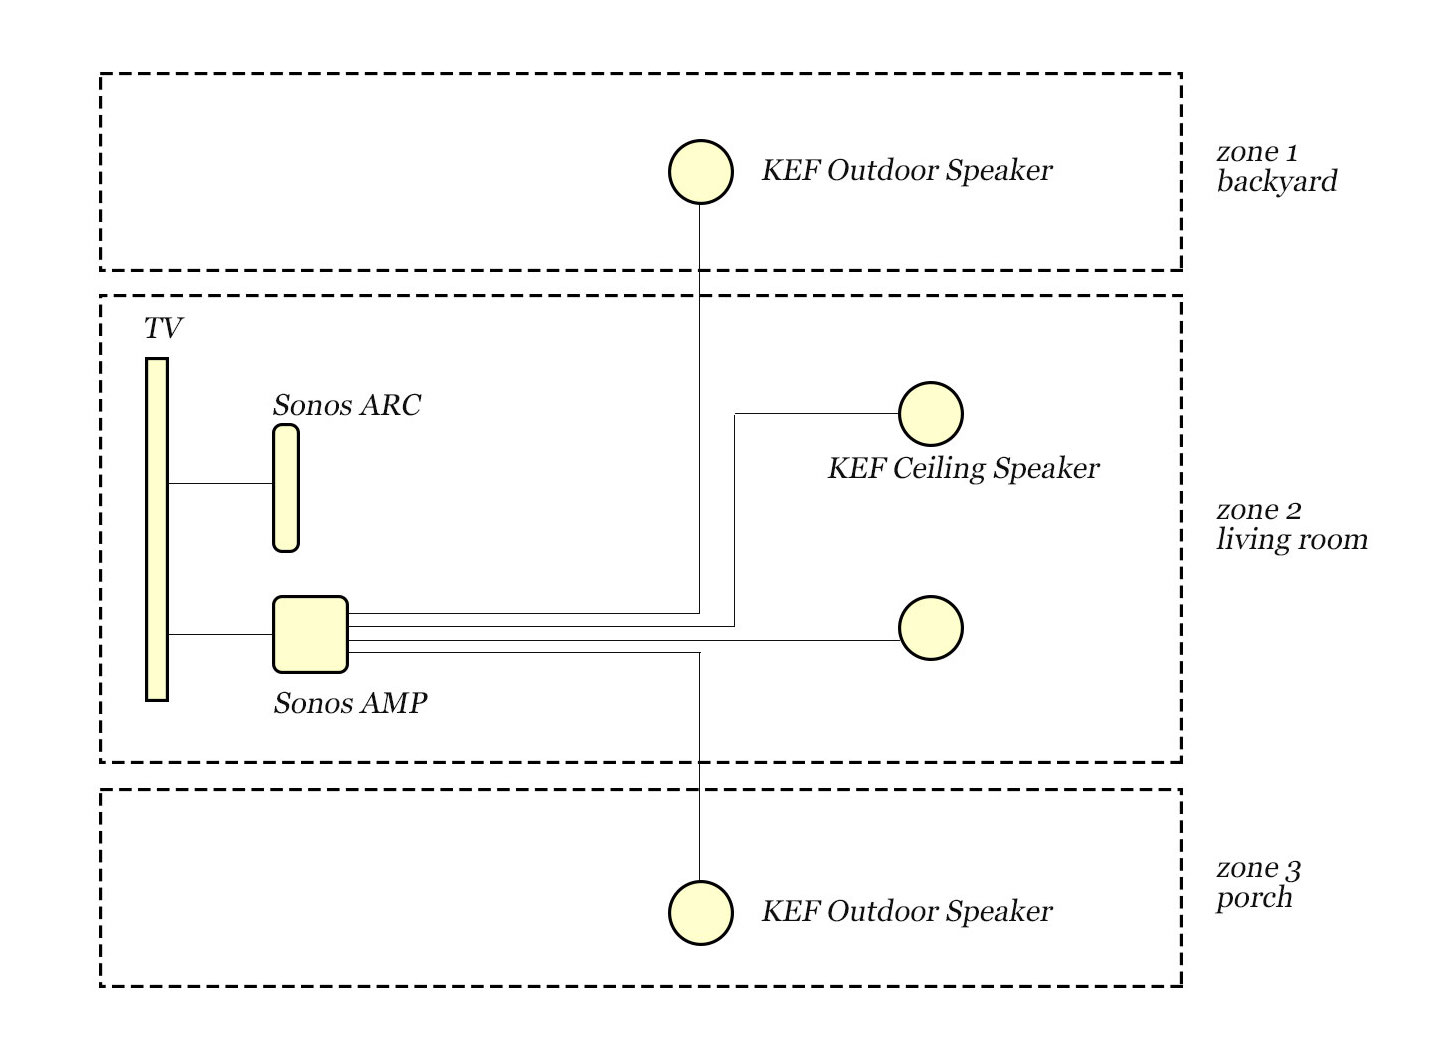 Sonos Wiring Diagram from d2x6ruw3g72a97.cloudfront.net